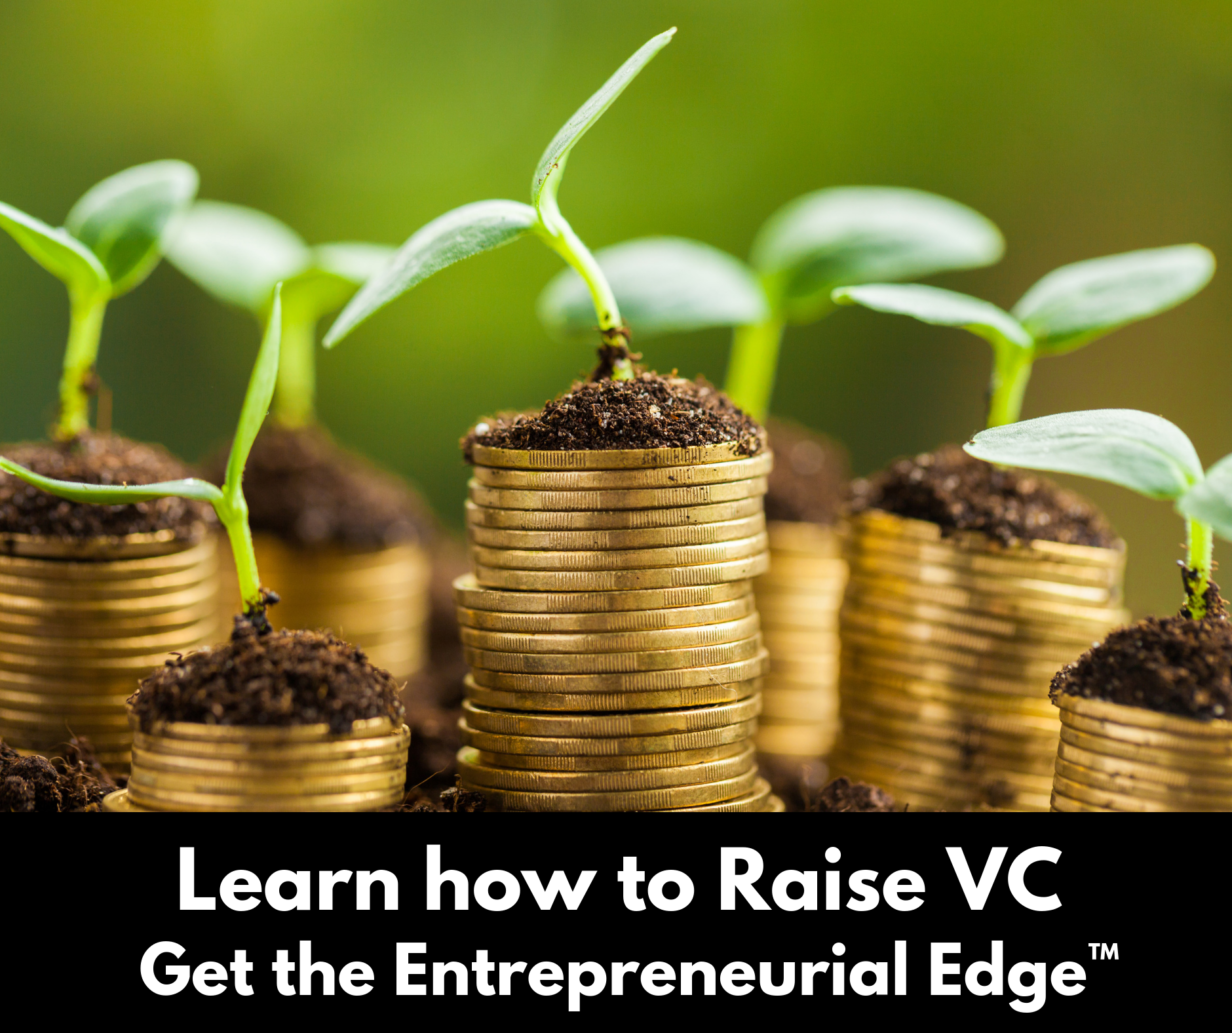 Learn how to raise venture capital - entrepreneur's edge - reagan pollack